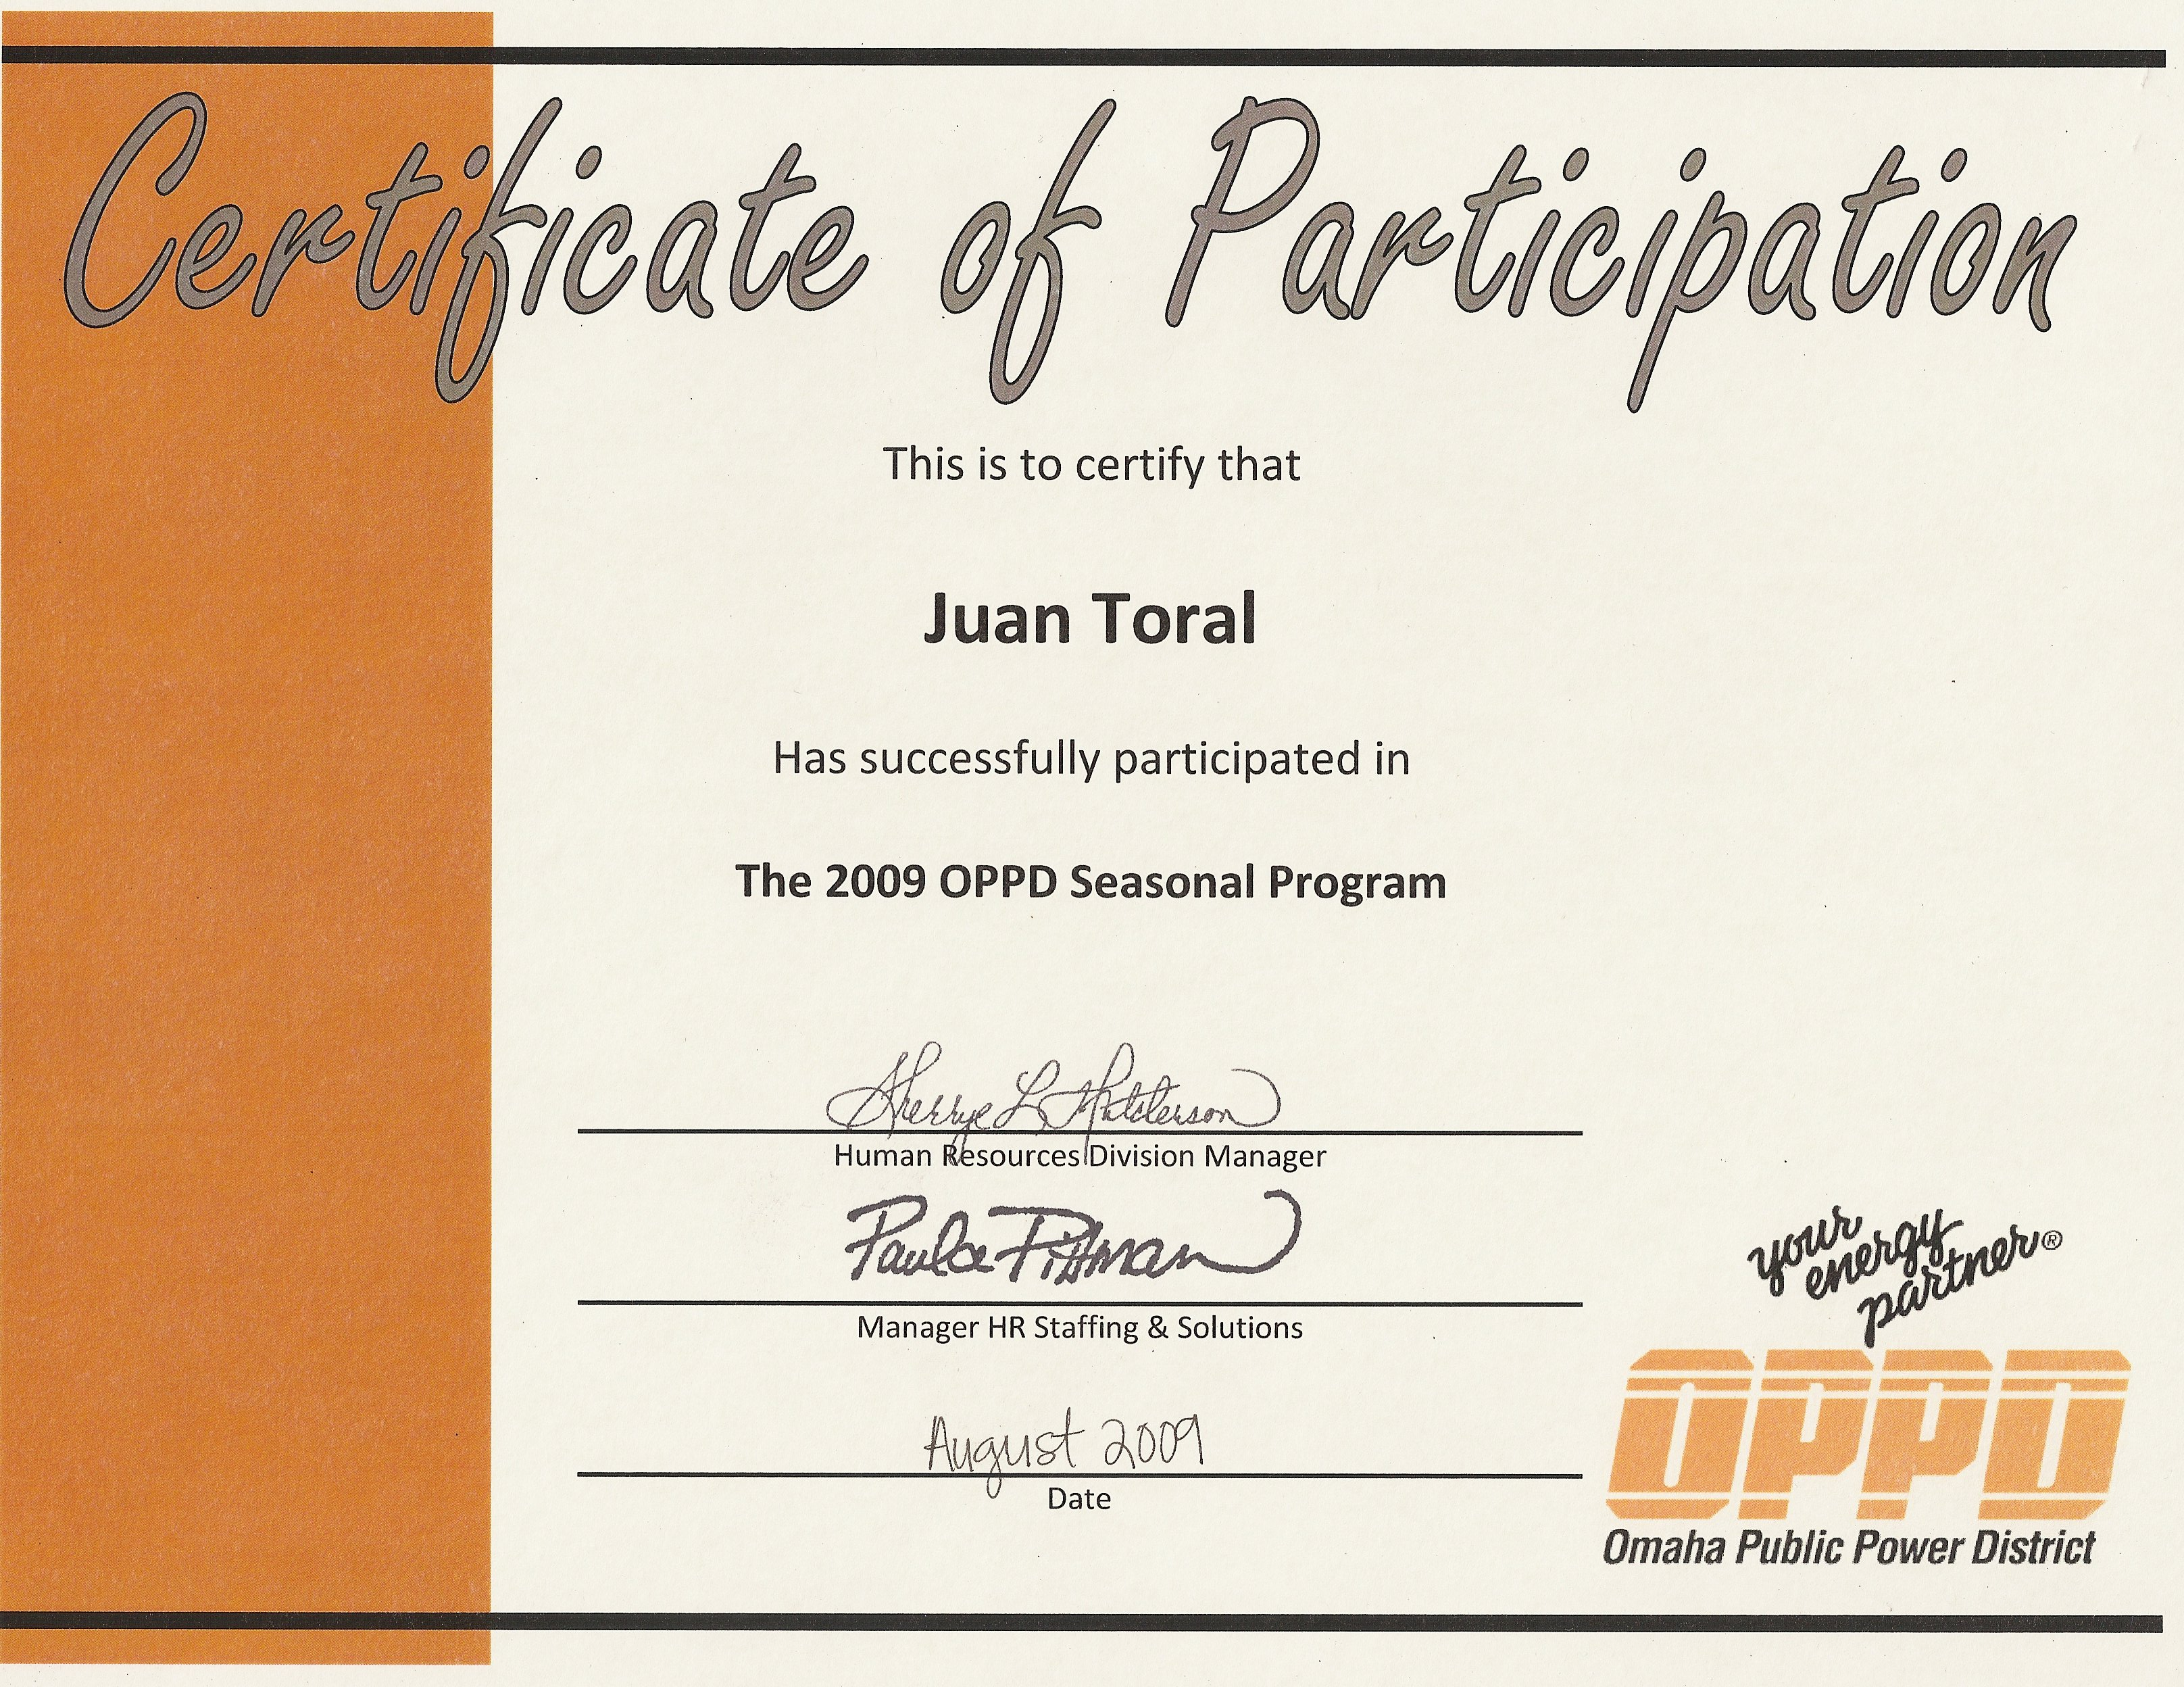 Certification of participation free template pasoevolist certification of participation free template 1betcityfo Images